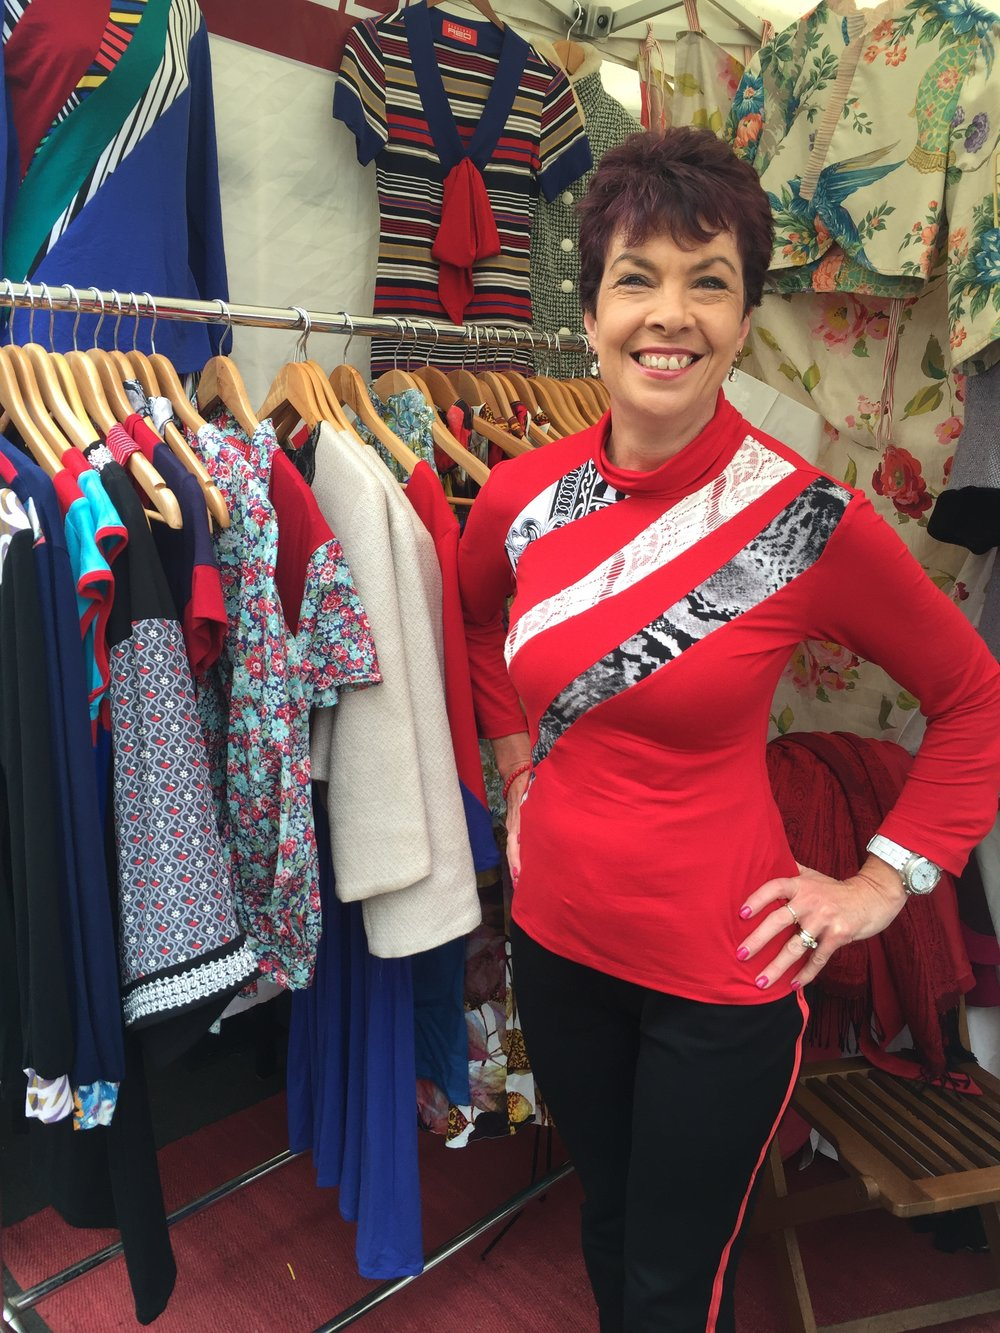 Leanne wears a custom made bright red version of the Jigsaw Skivvy.